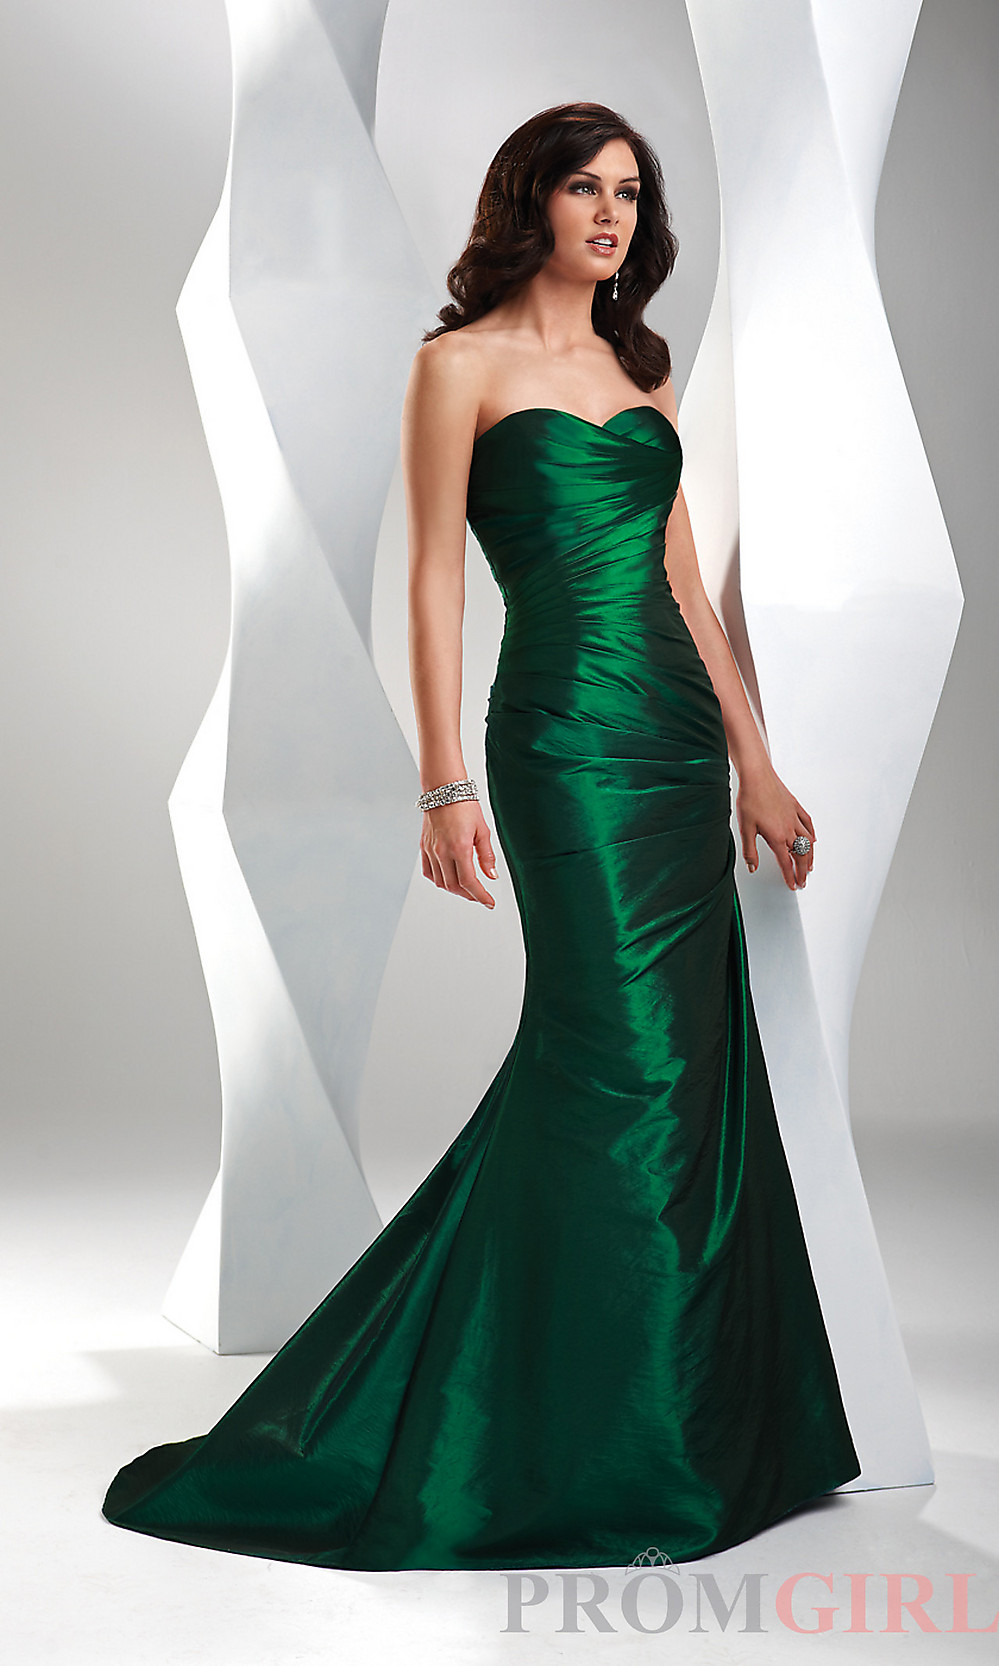 Strapless Dresses Elegant For Any Occasion 0010